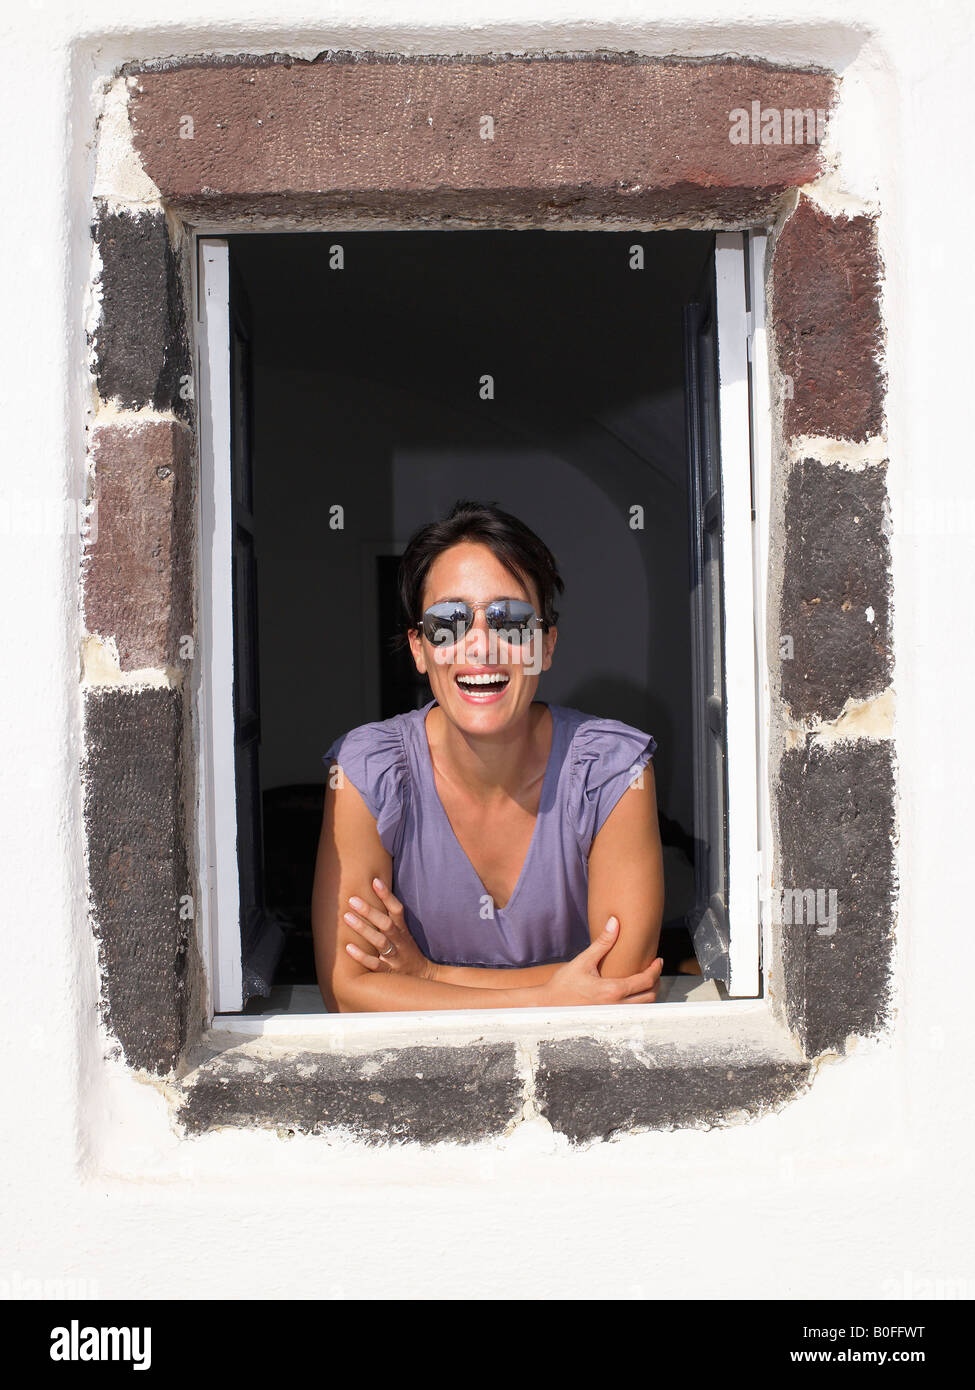 Woman looking through window, smiling Stock Photo